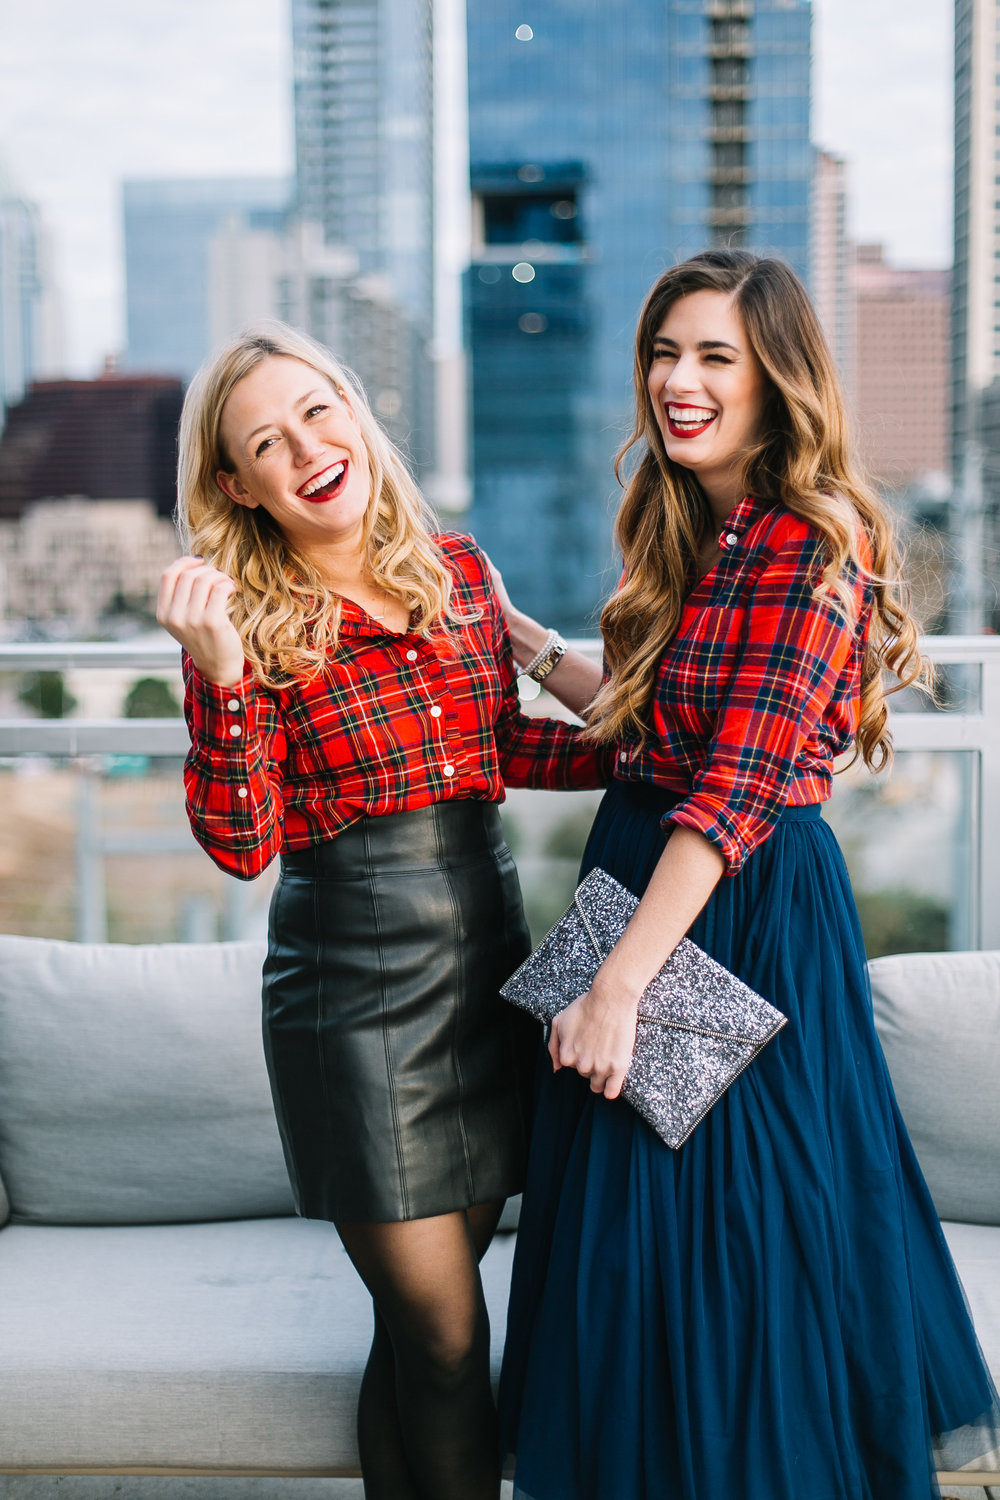 mad for plaid.  @theautumngirl_  //  @byhilaryrose